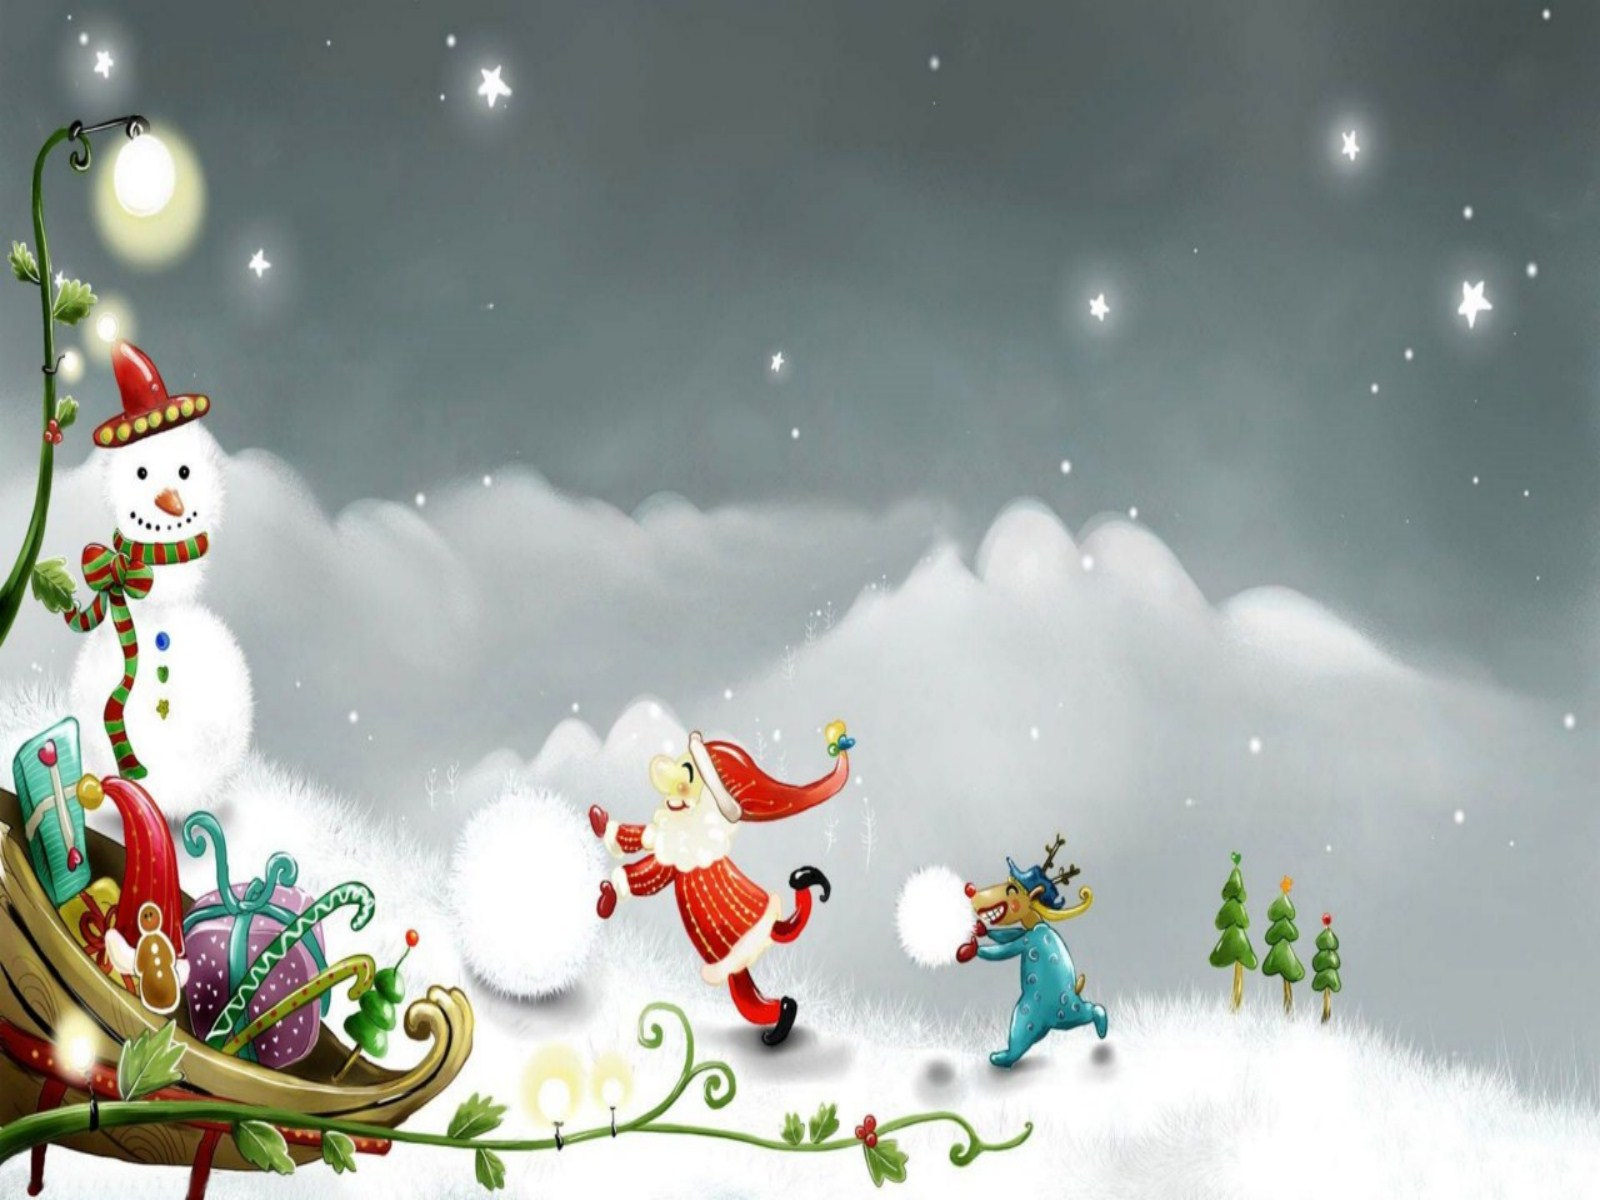 Funny Christmas Desktop Backgrounds - WallpaperSafari